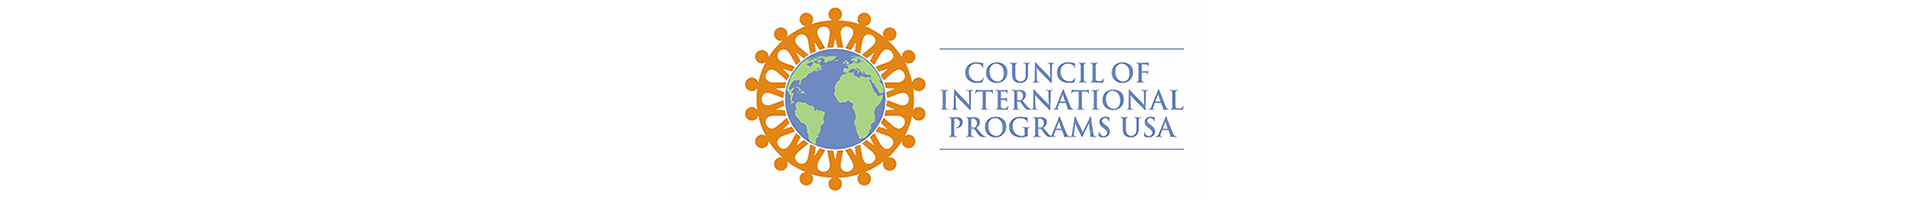 Council of International Programs, USA